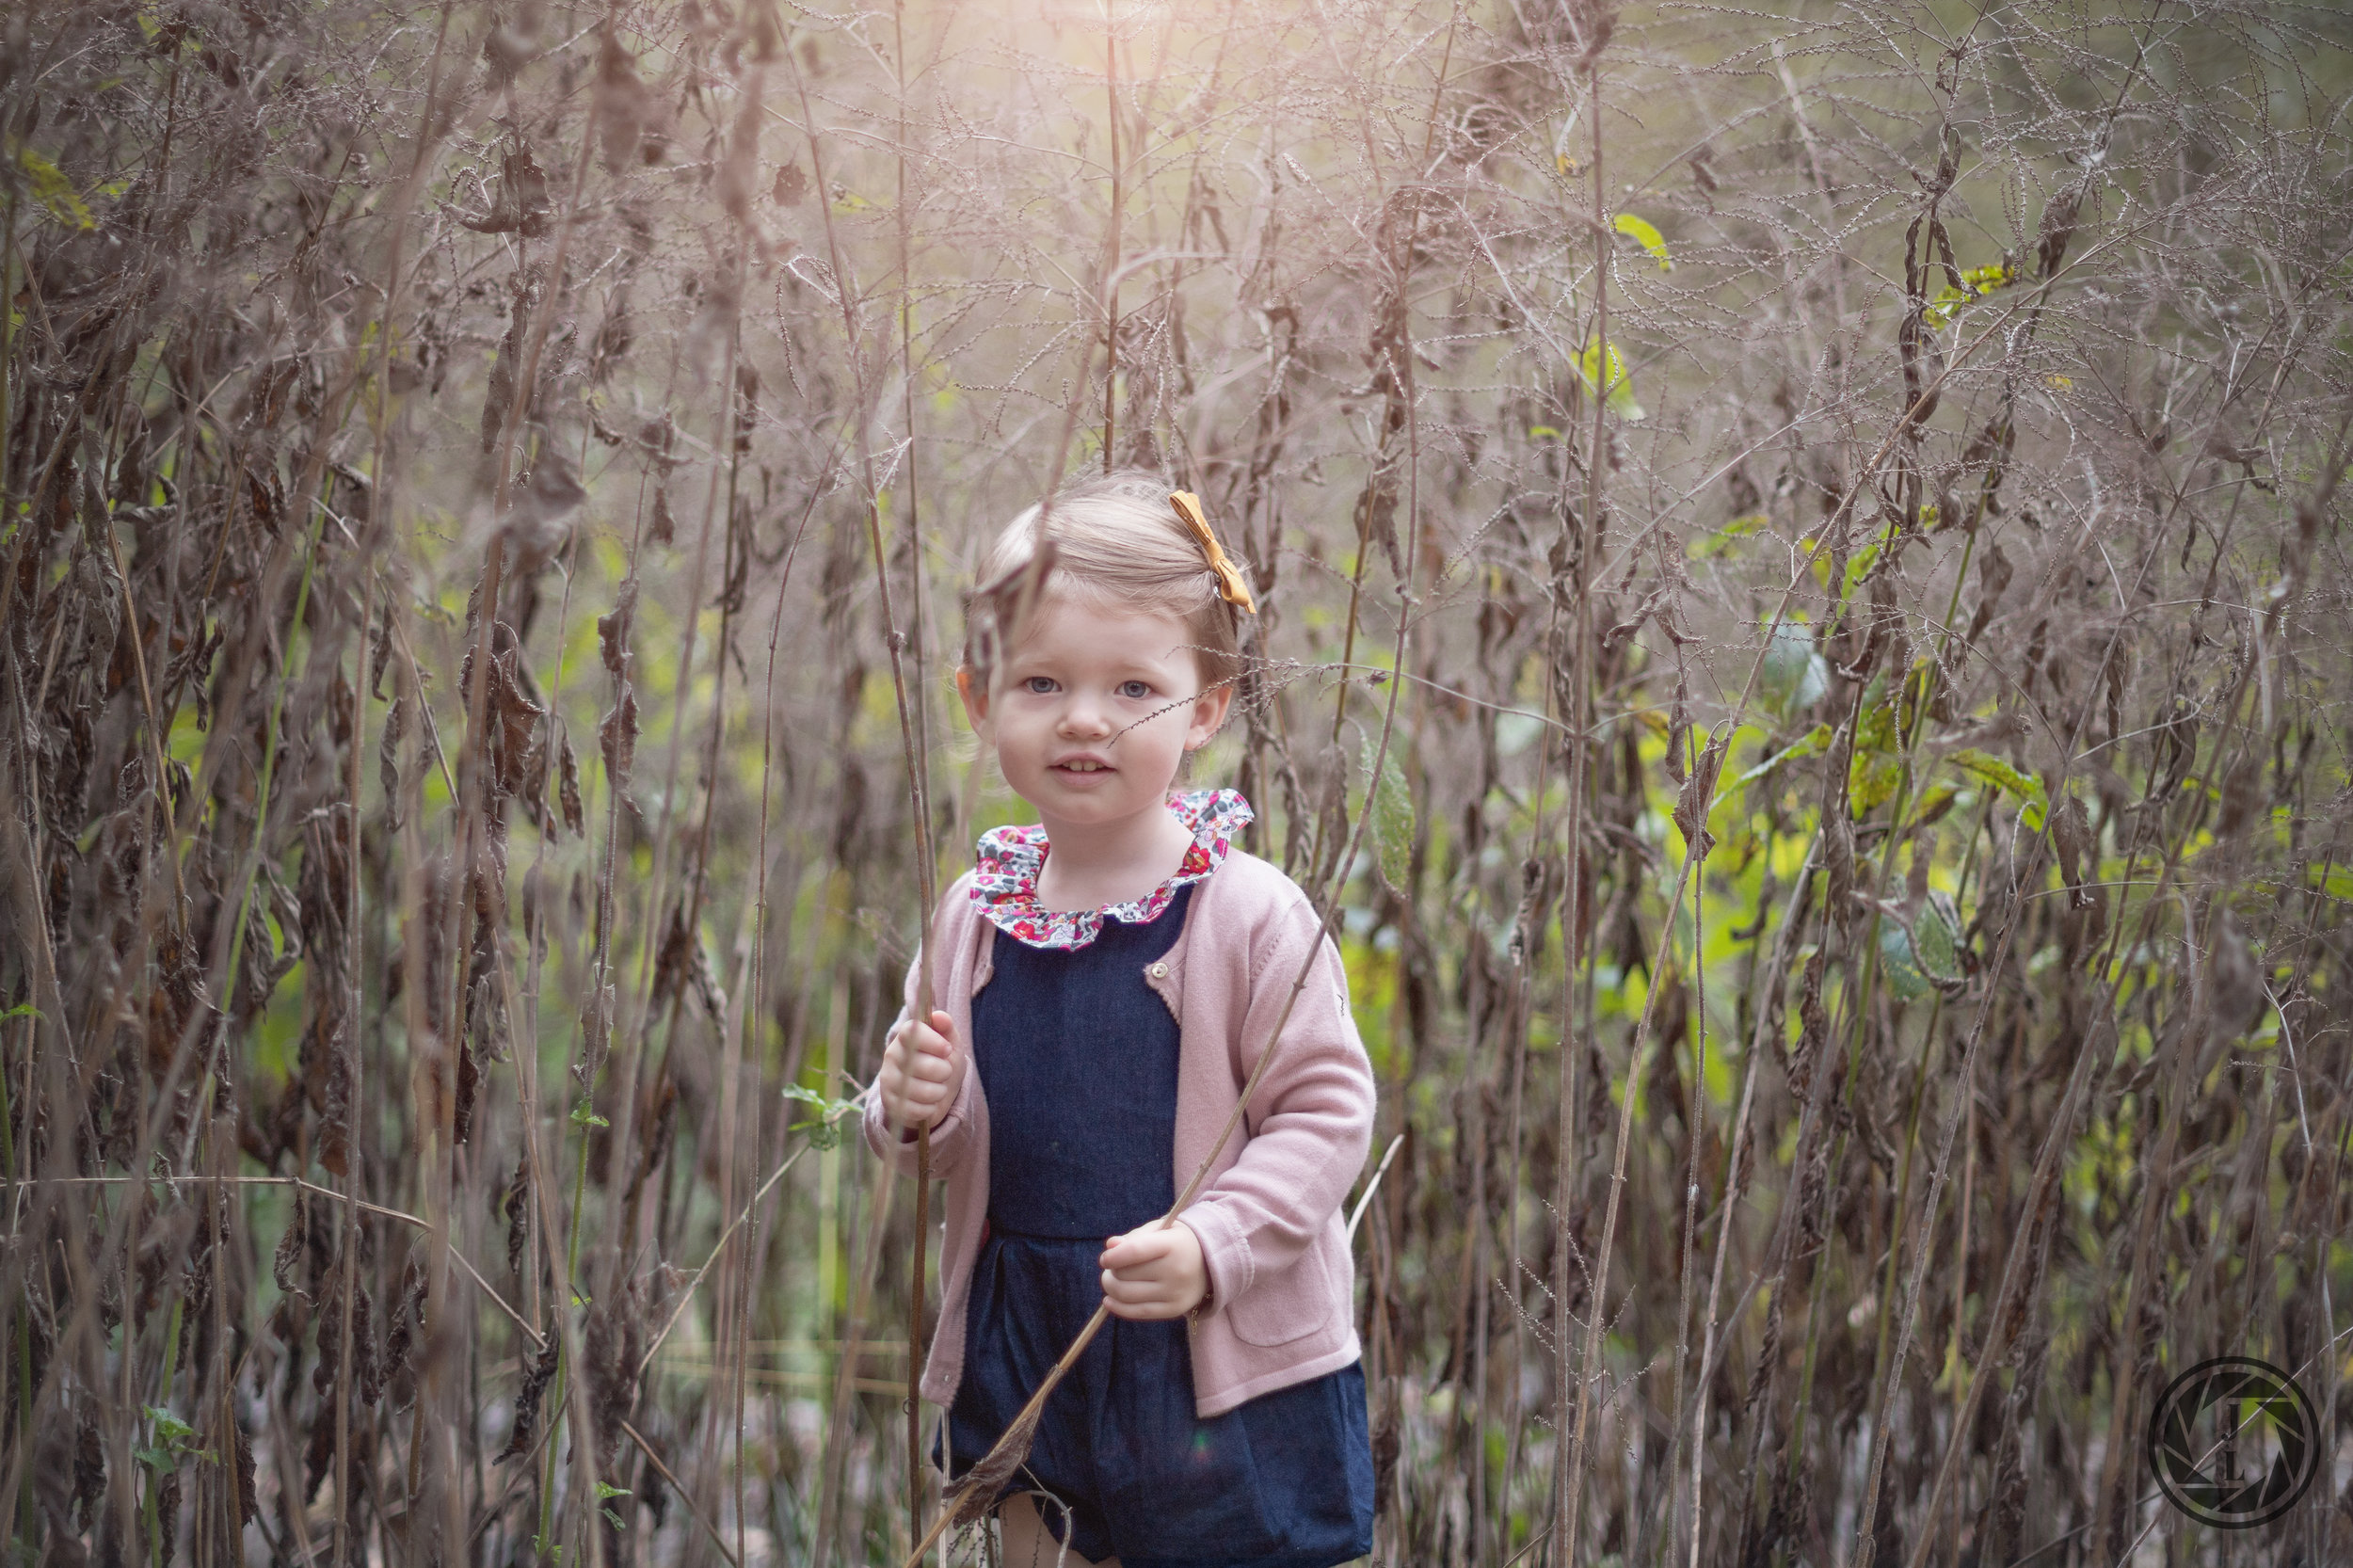 young girl smiling at the camera in tall grass